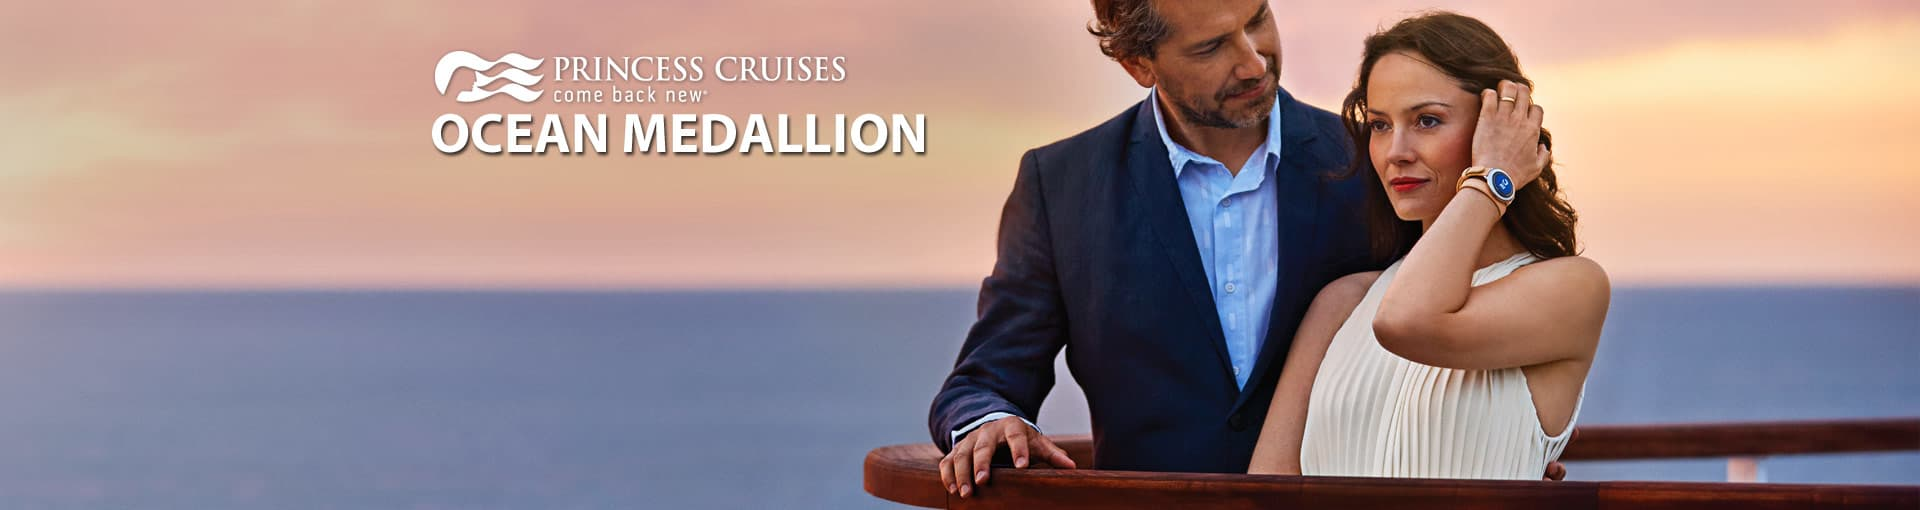 Princess Cruises - Ocean Medallion